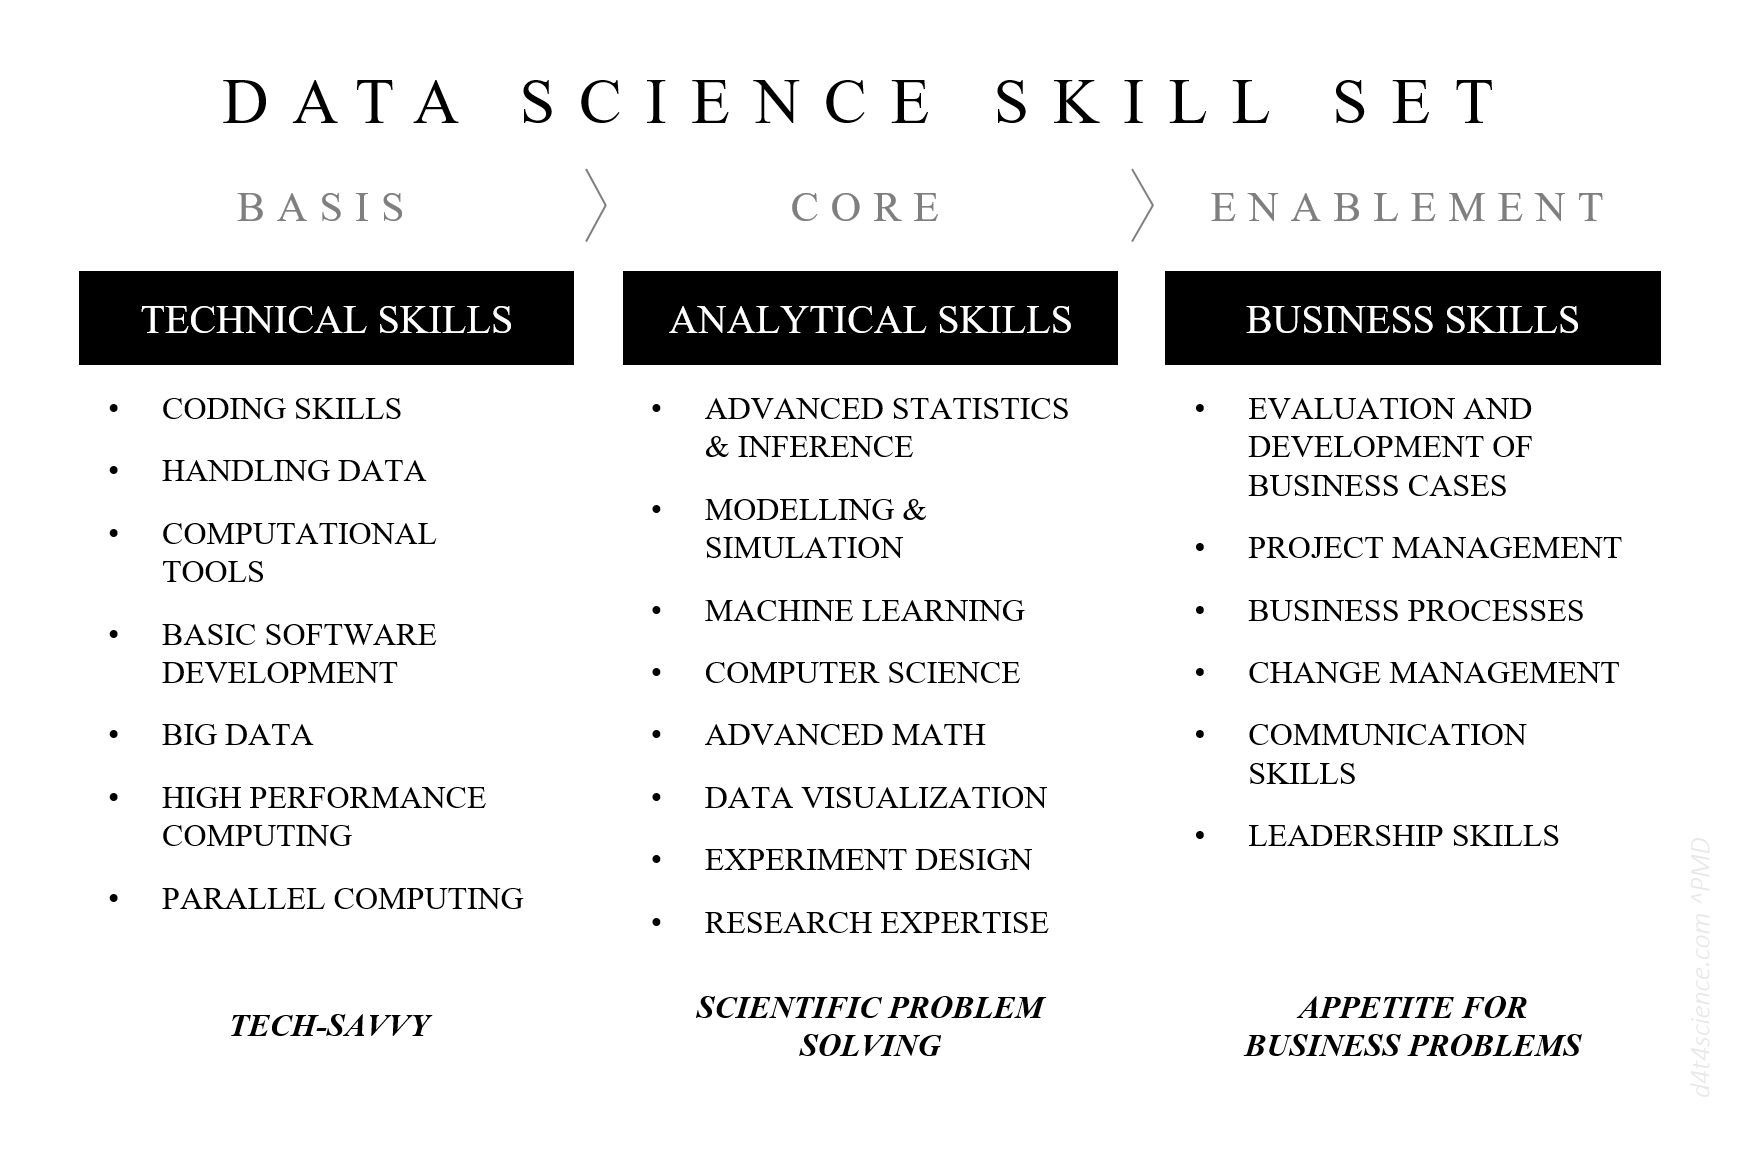 DATA SCIENTIST SKILL SET